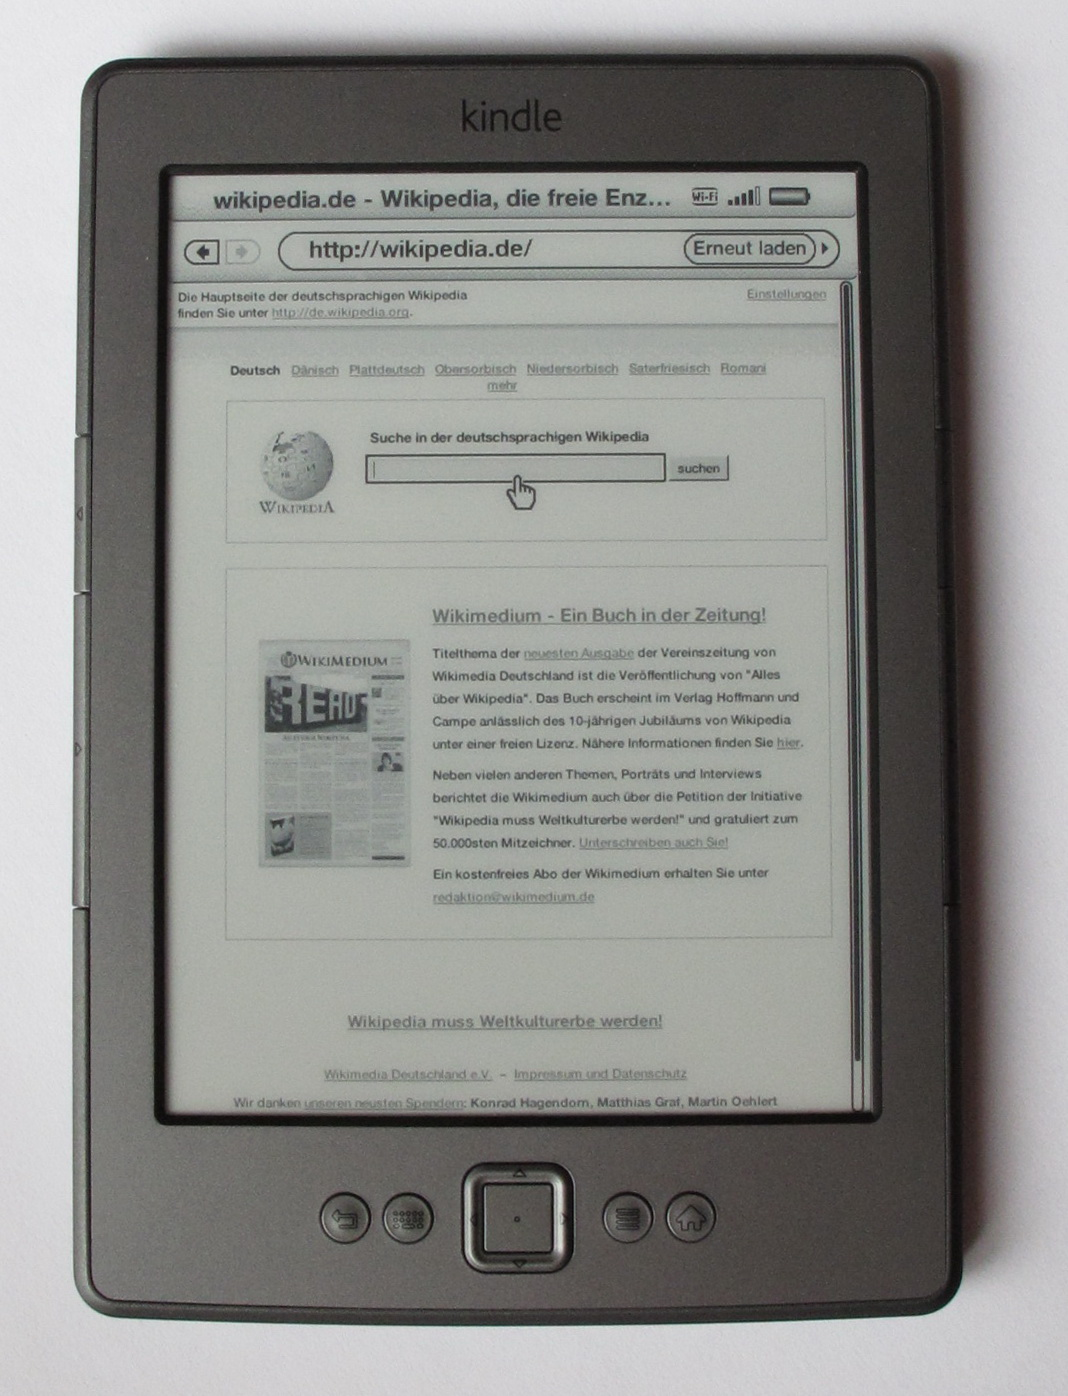 Kindle Libro Electronico Generación Kindle Wikipedia La Enciclopedia Libre